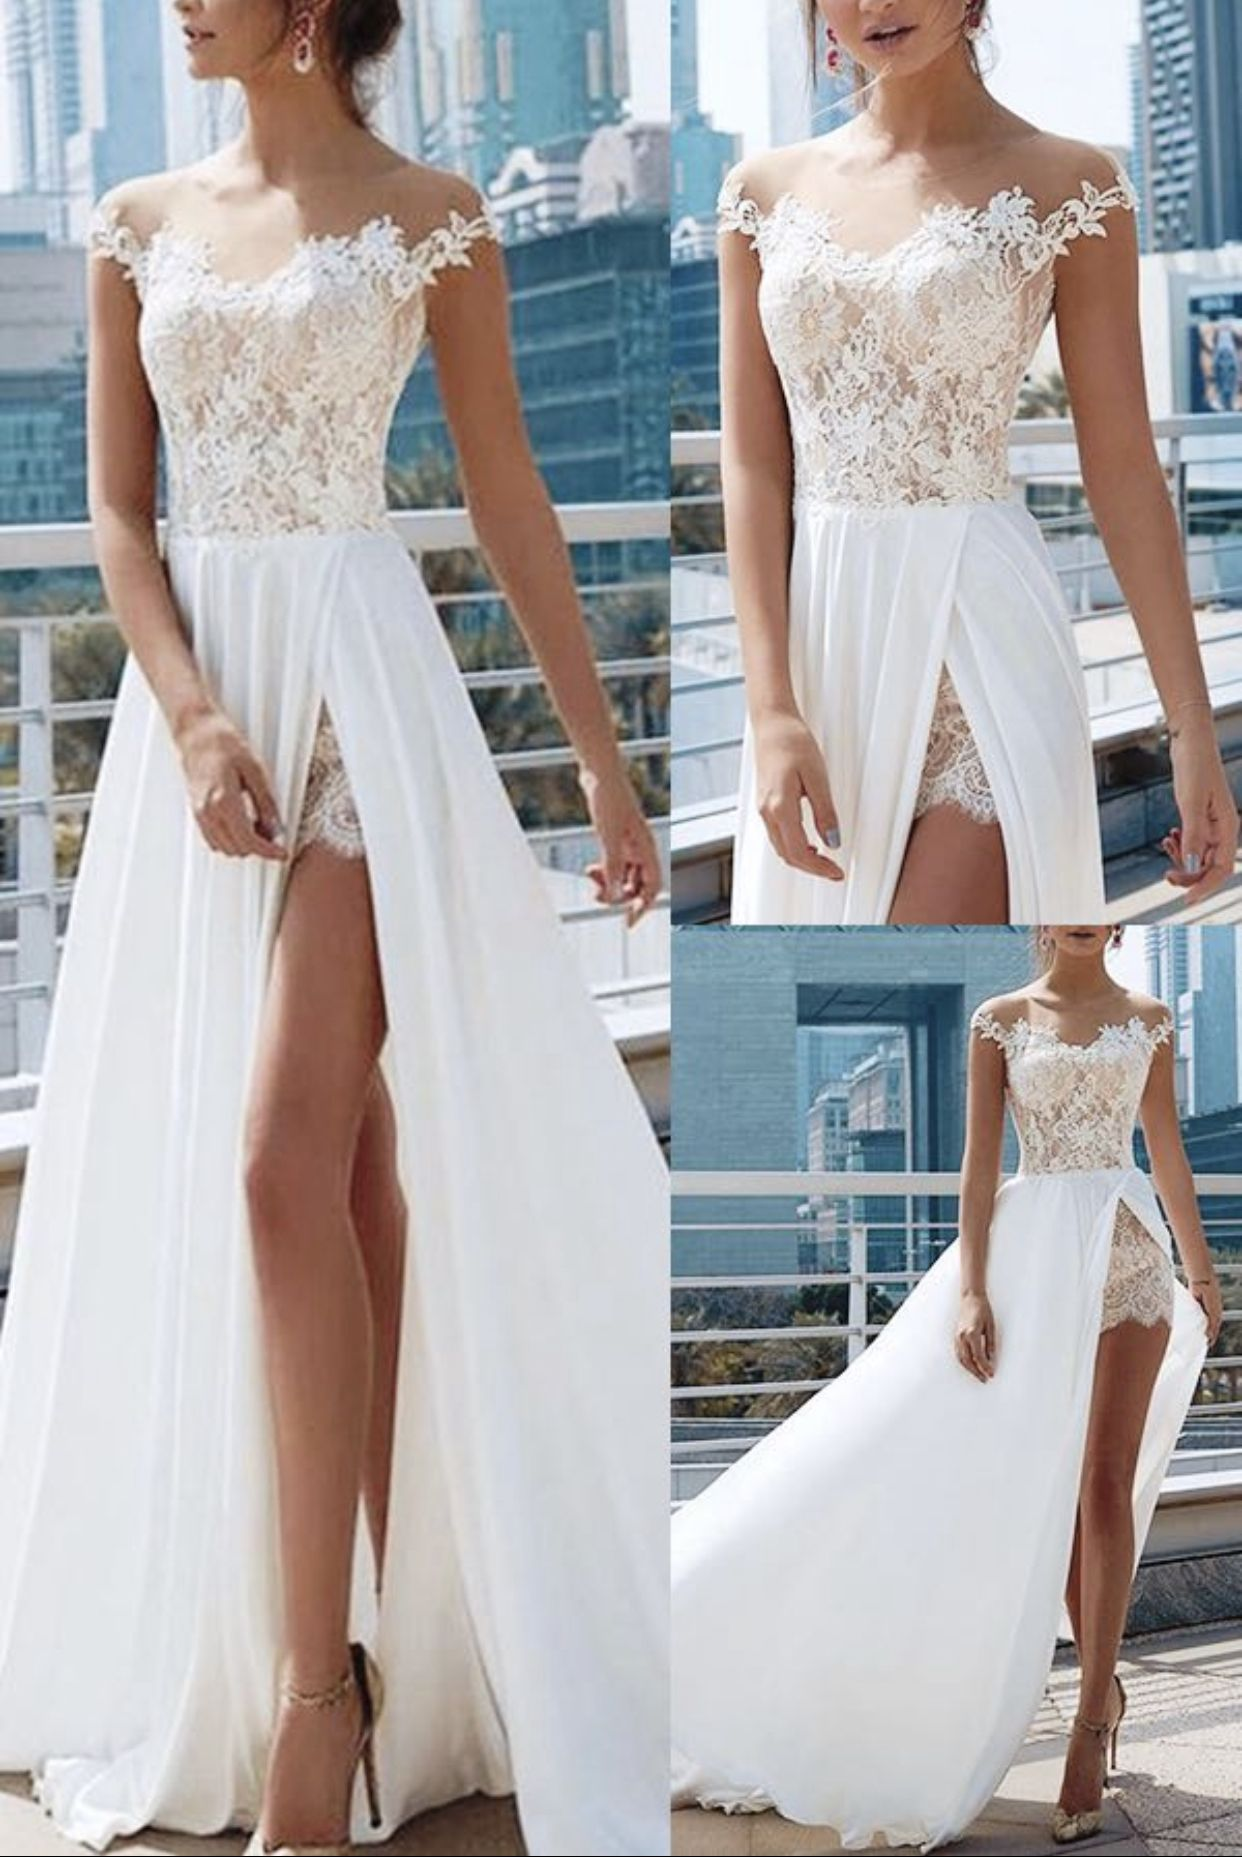 Lace Beach Wedding Dress 2019 With Images Lace Beach Wedding